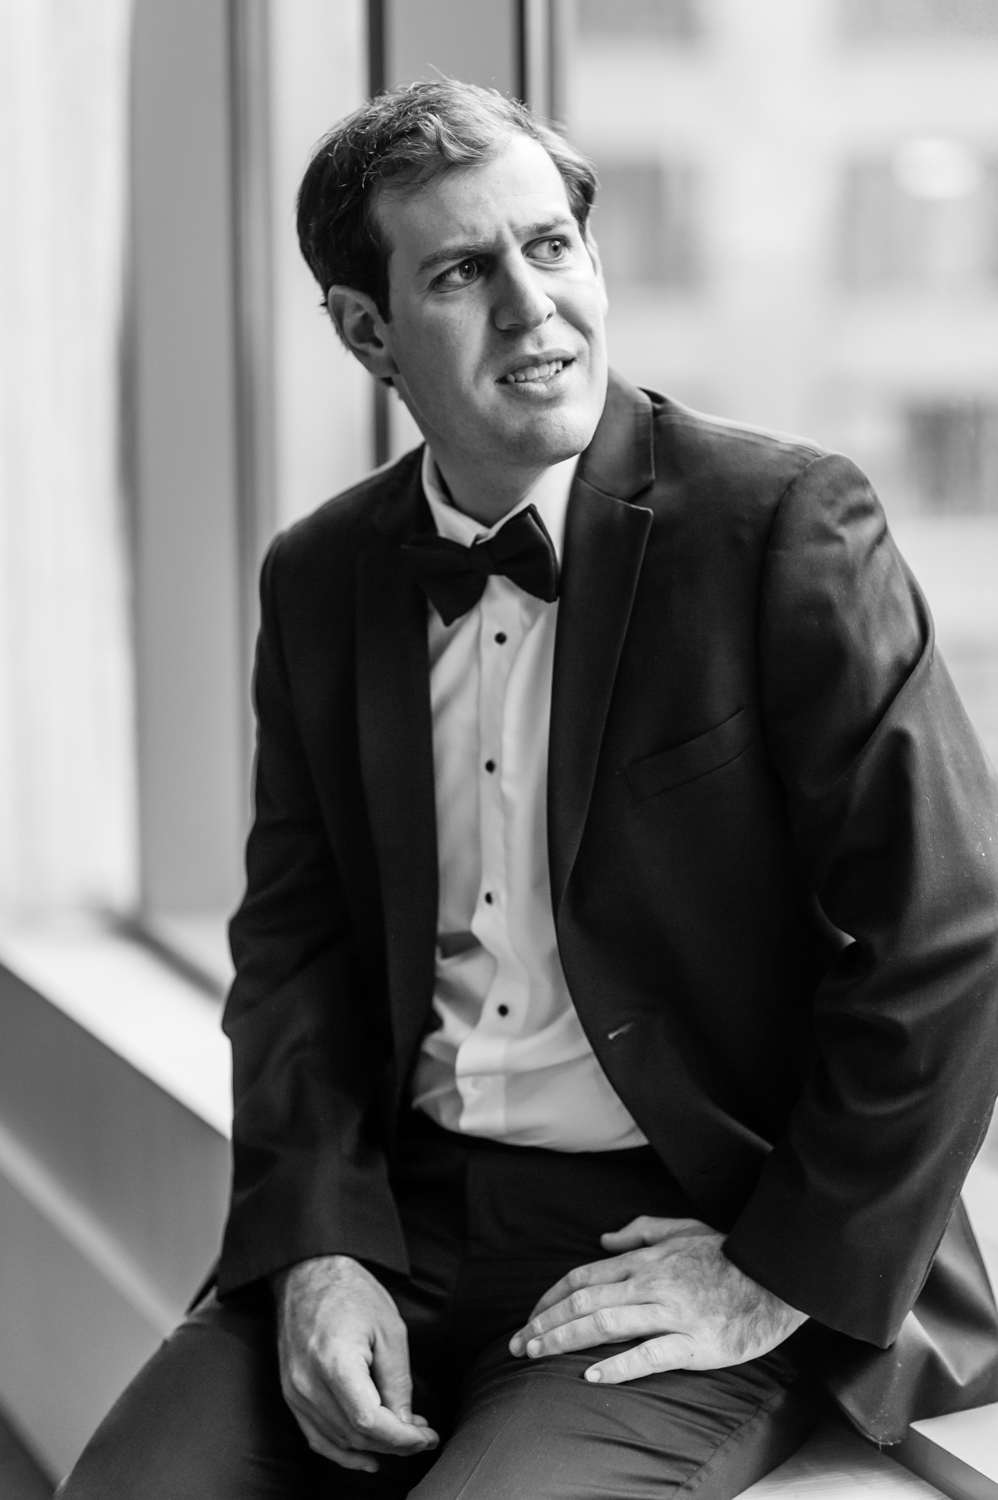 Stefy Hilmer Photography-groom portrait before the wedding ceremony.jpg